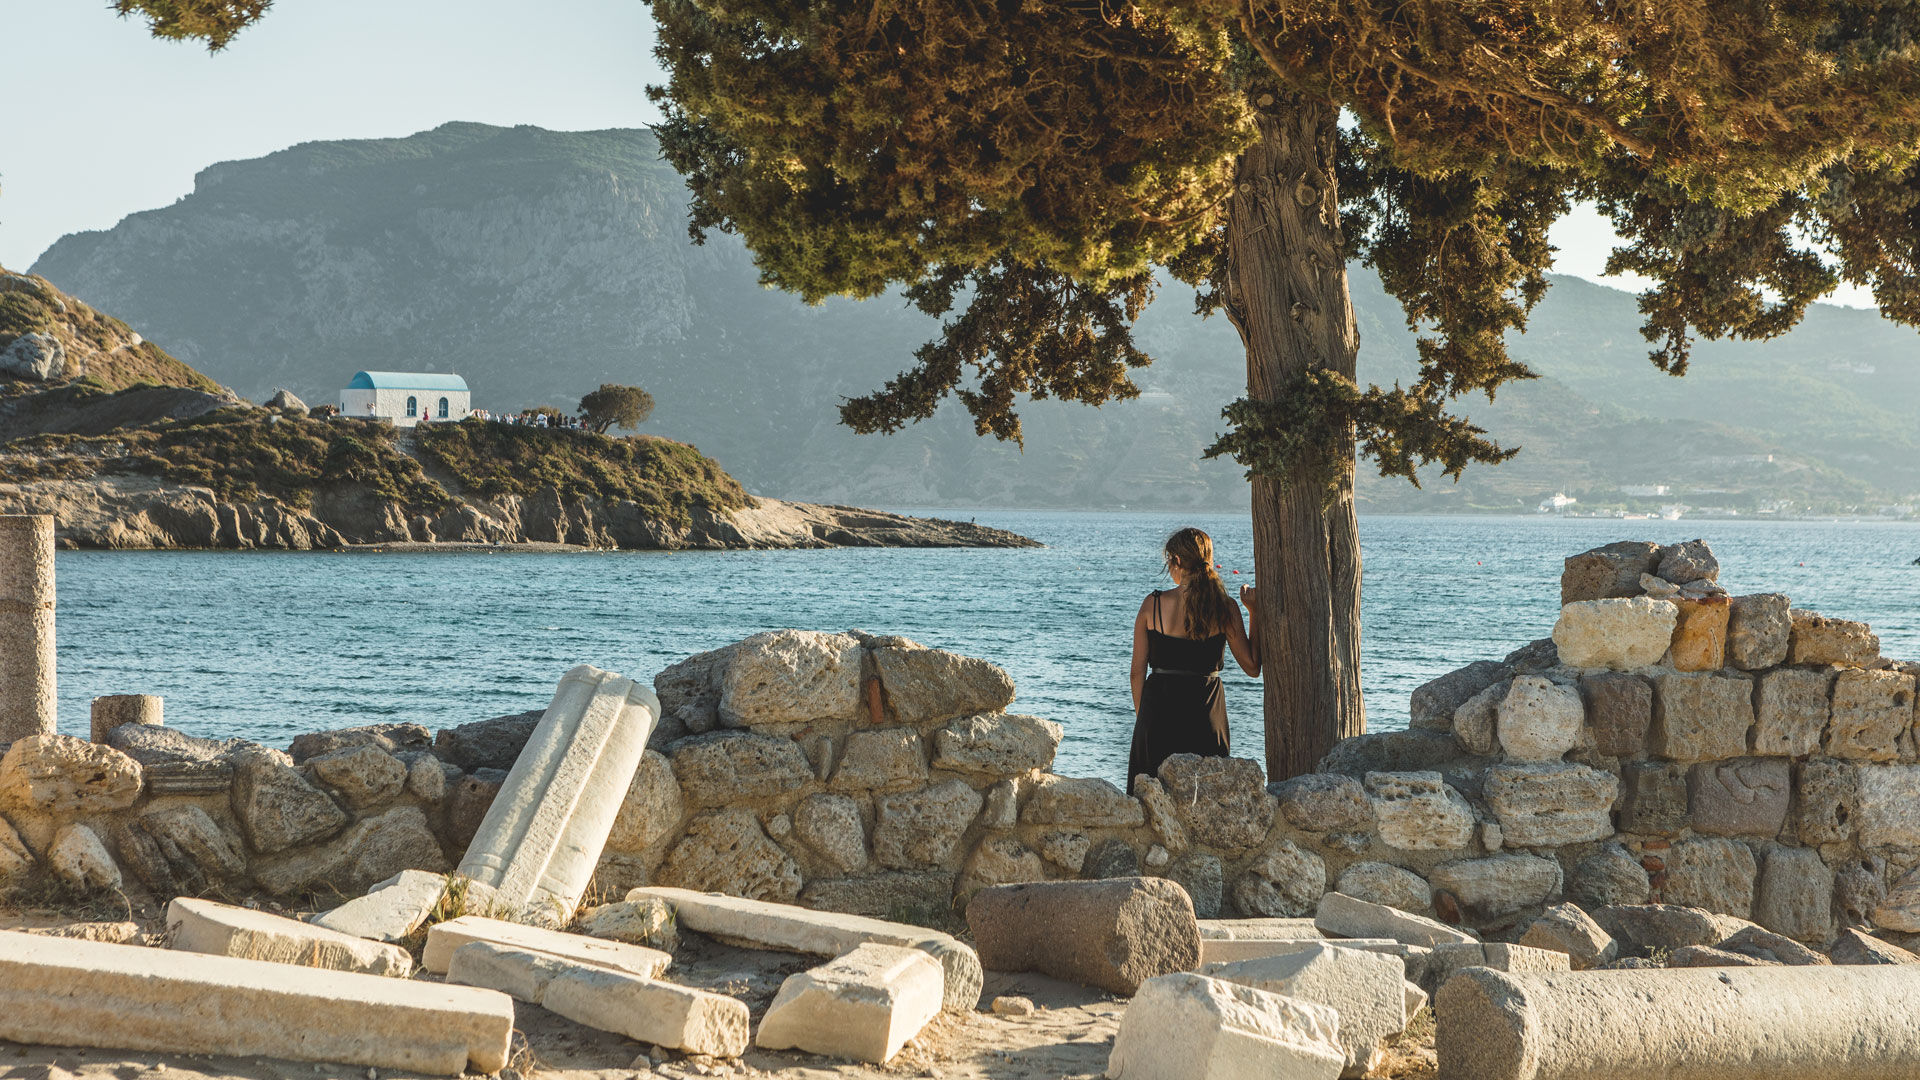 If you're caught between wanting to spend the day on the beach and experiencing a bit of culture on Kos, then photogenic Agios Stefanos has you covered